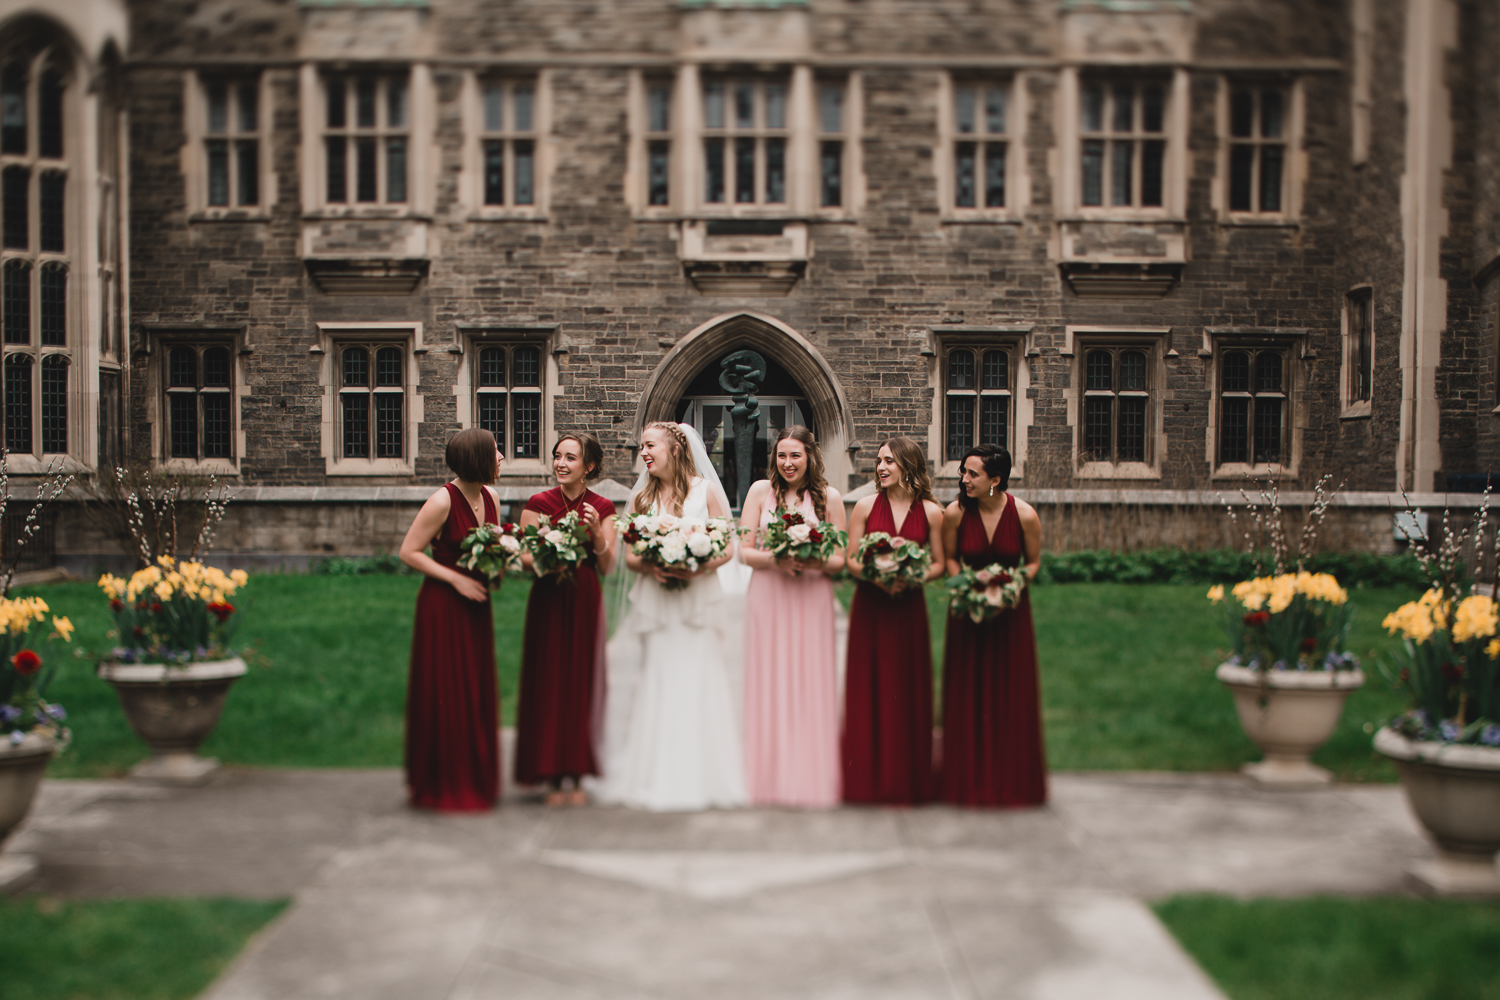 Candid, natural wedding portraits with bridesmaids